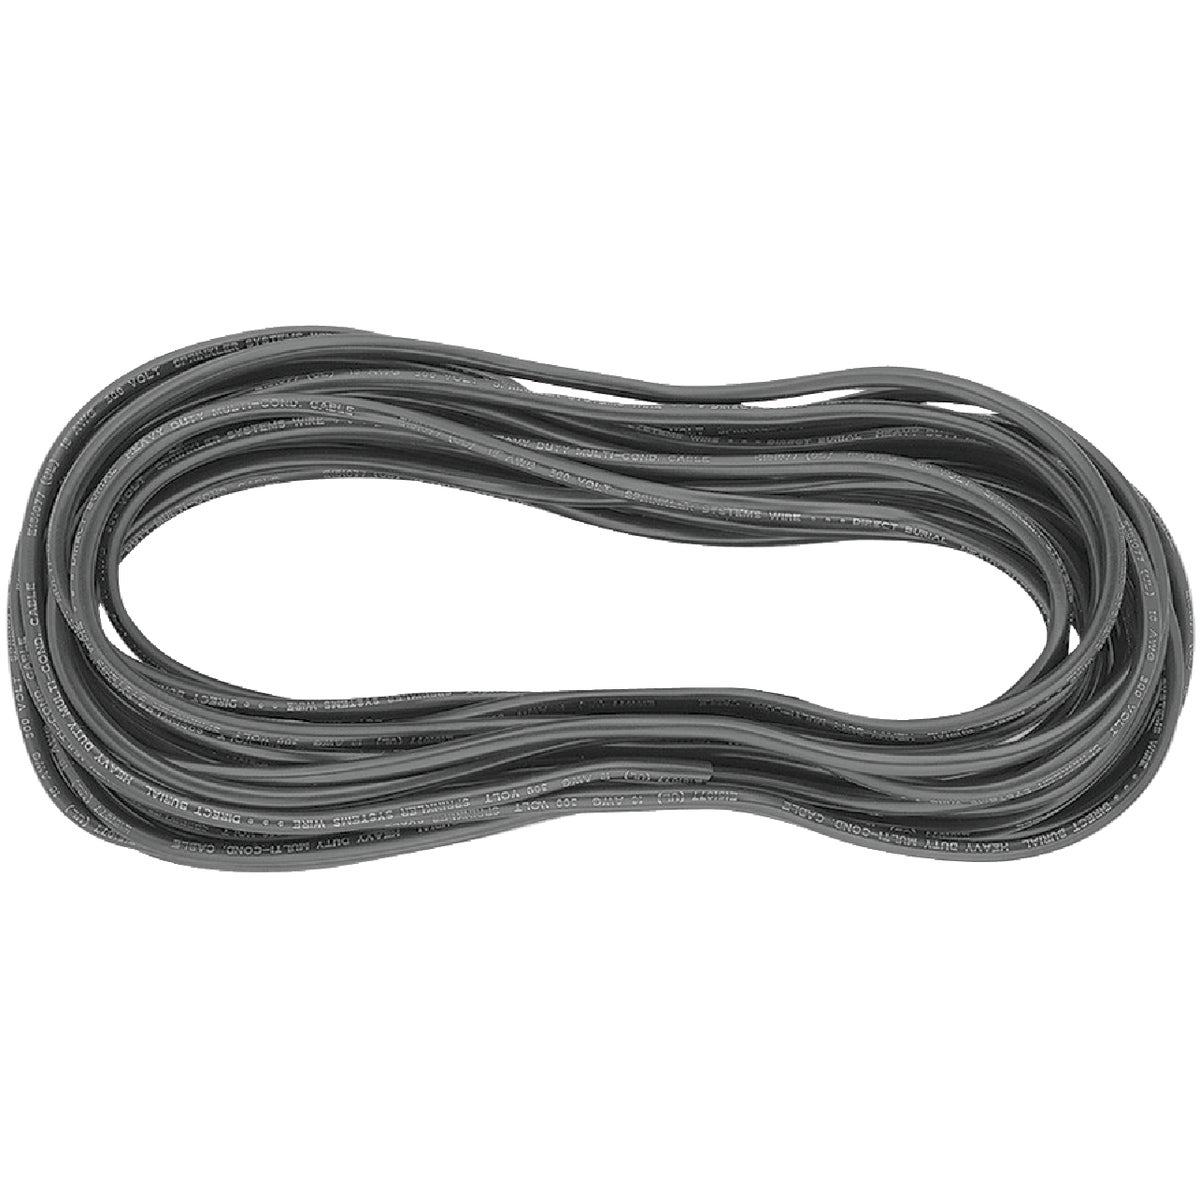 18-7X50' SPRINKLER WIRE - 57092 by Orbit